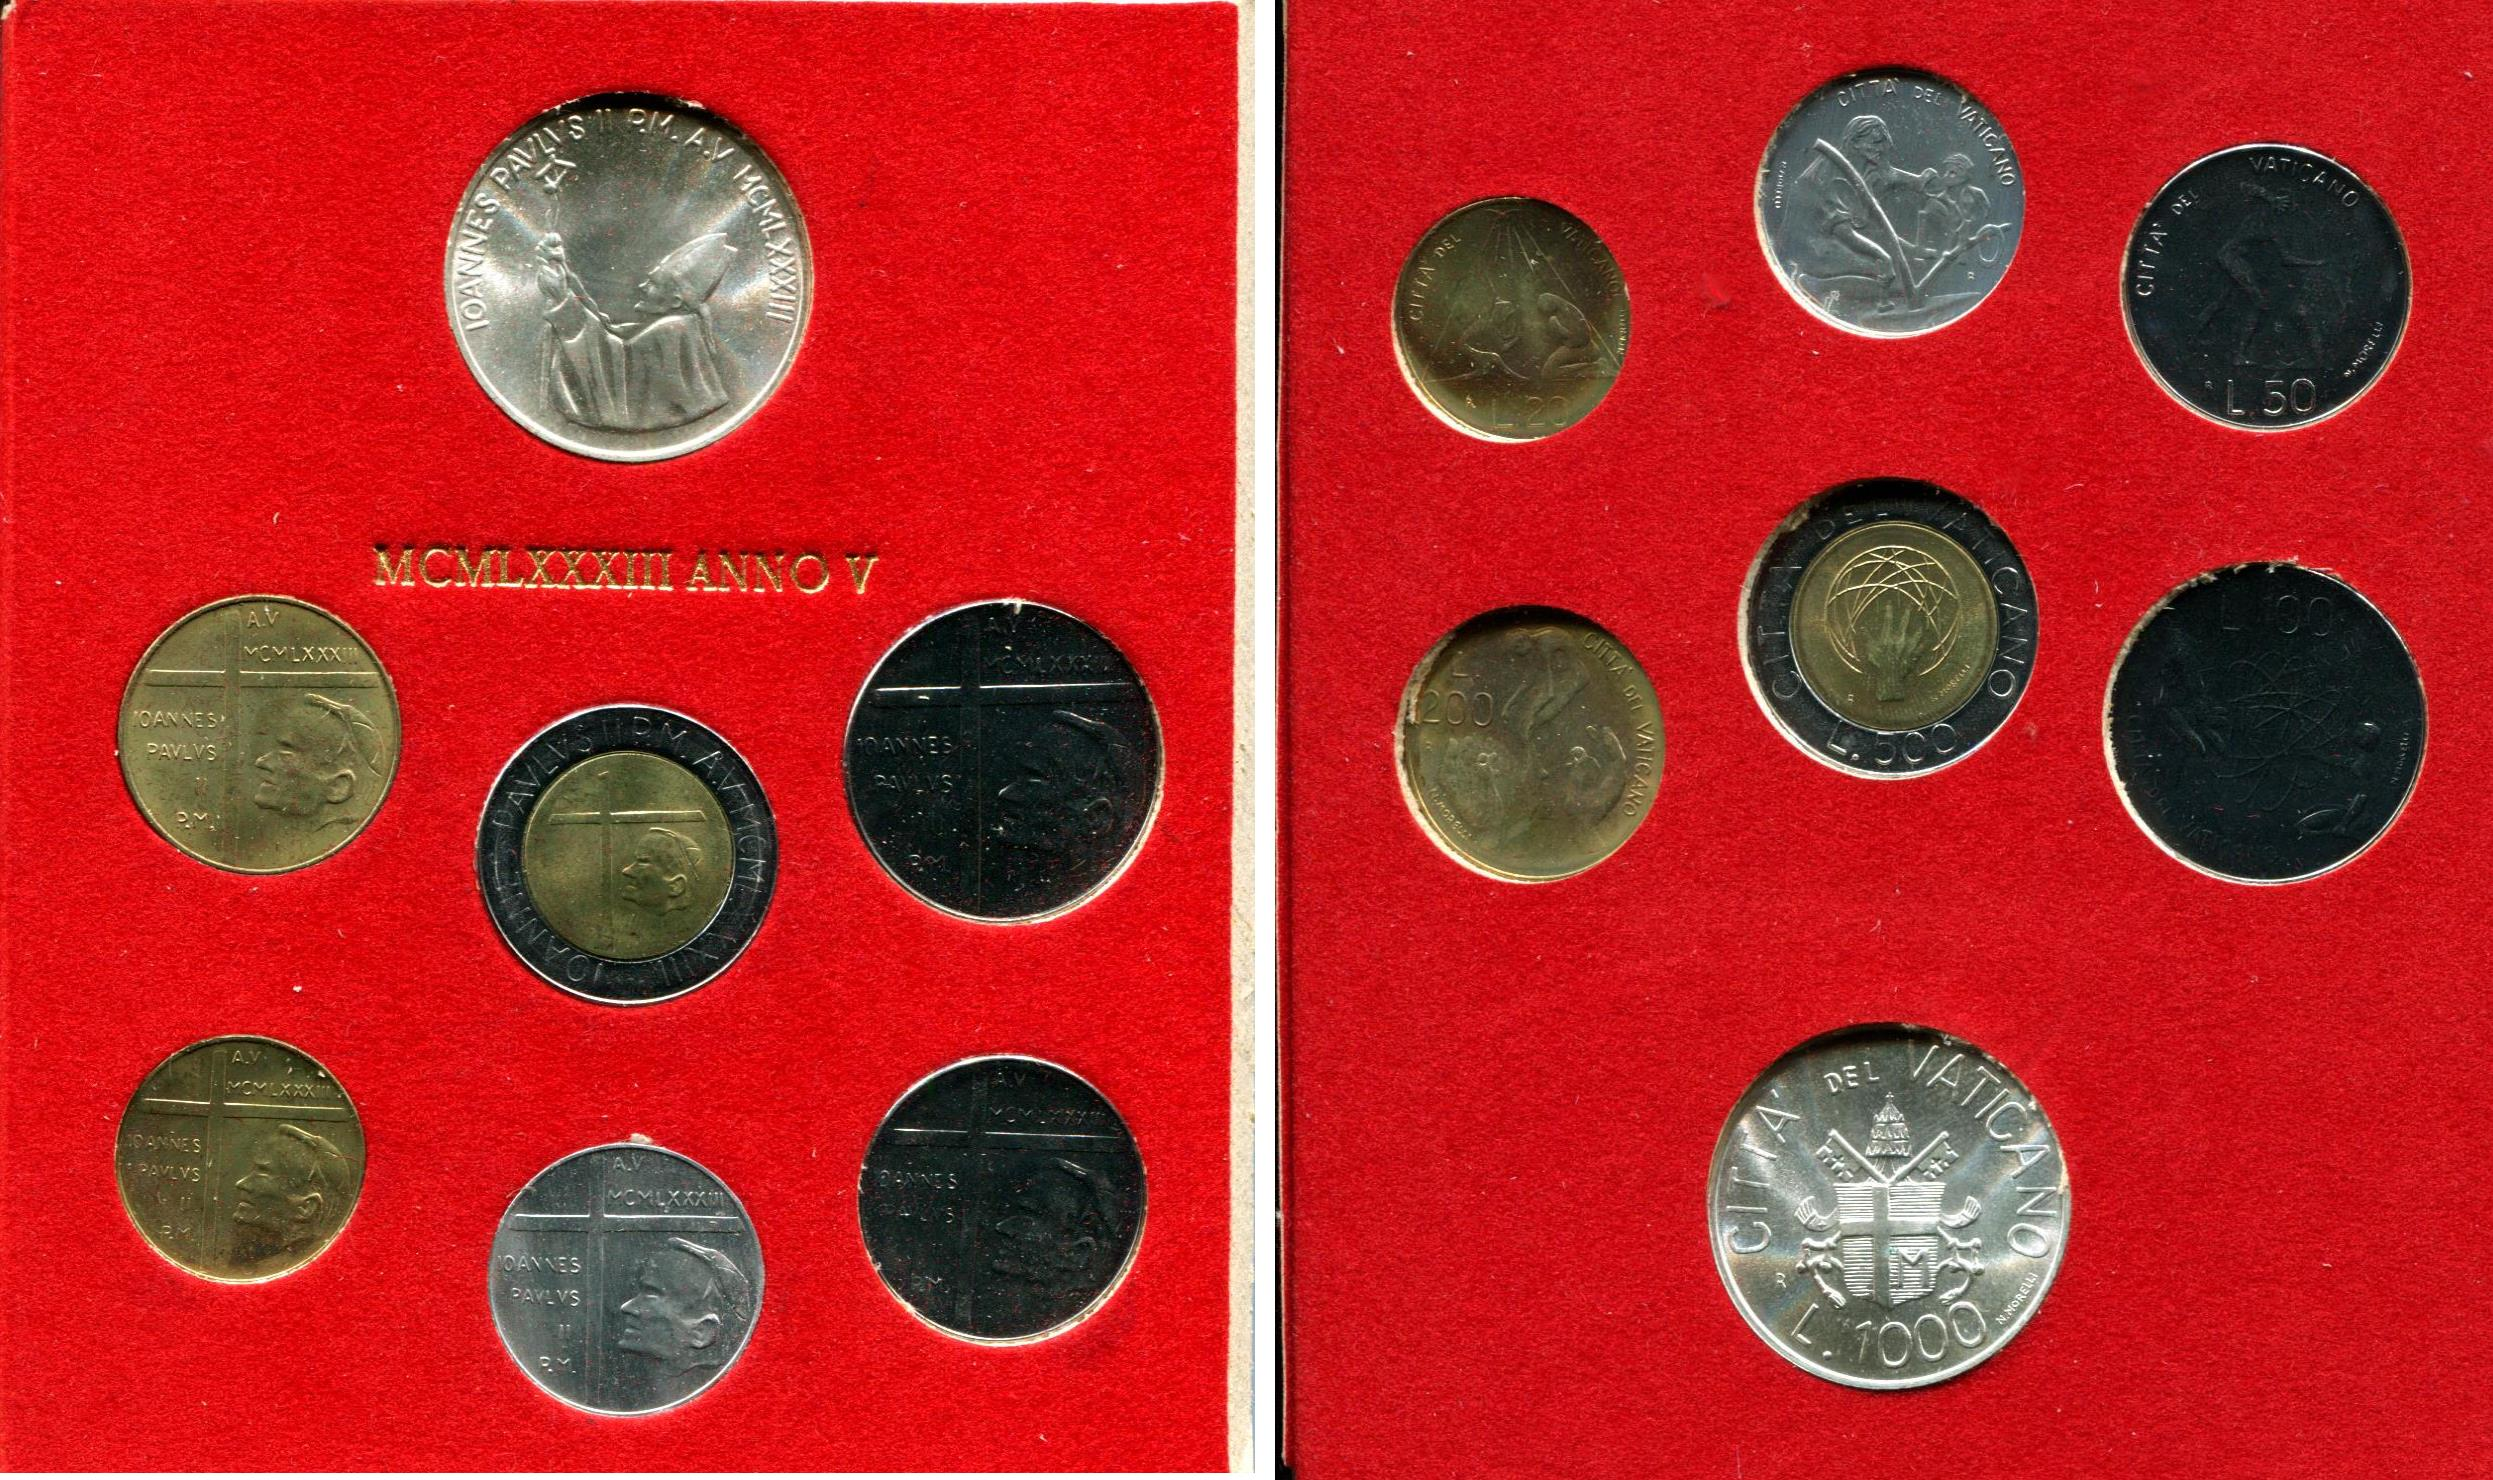 1963 Italy Vatican complete set  coins UNC with silver in official red box